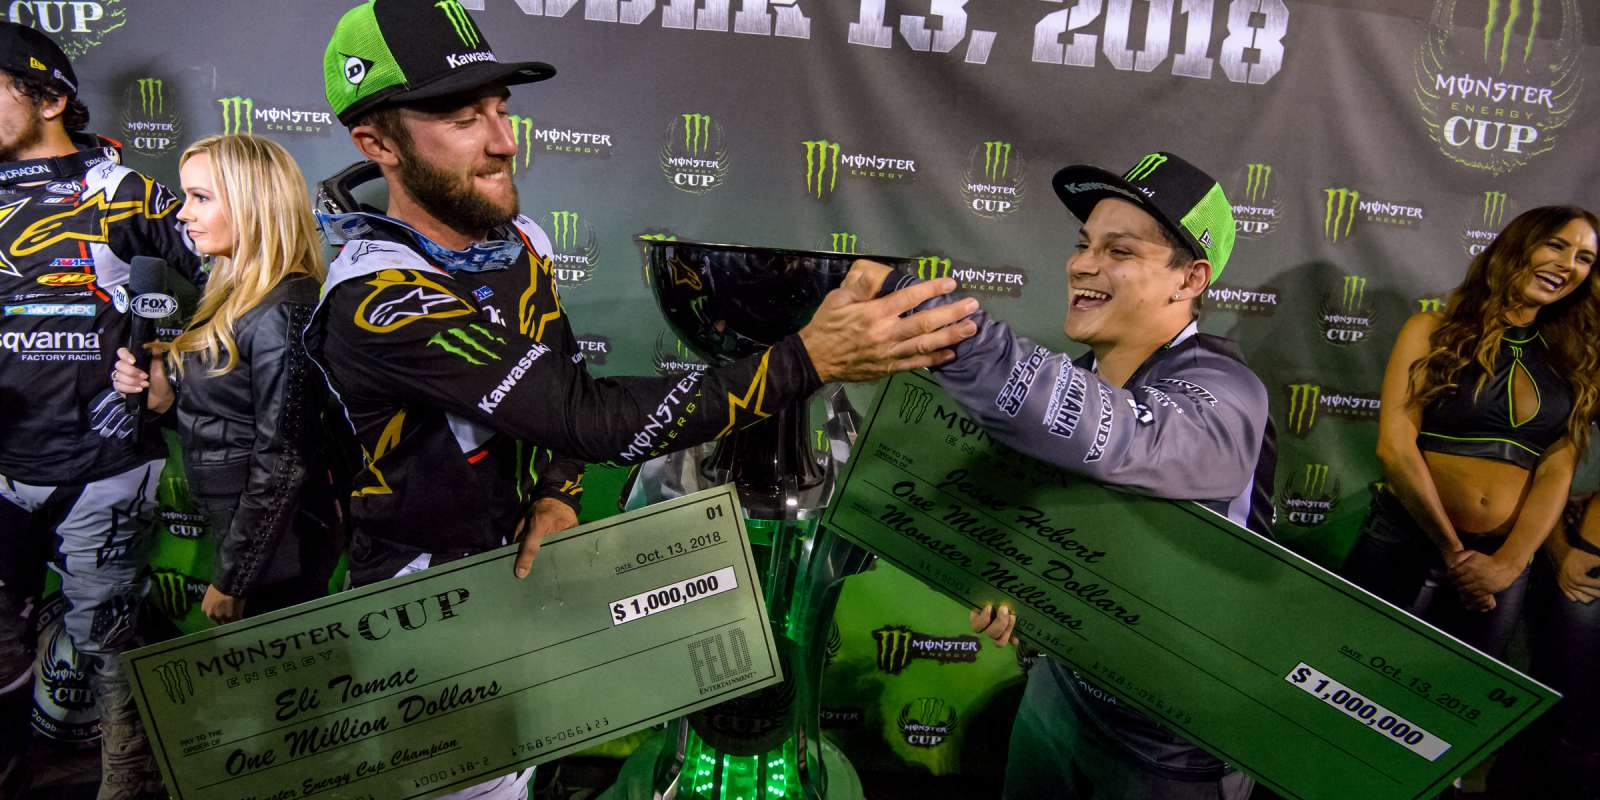 Eli Tomac and contestant winner Jesse Hebert on the podium holding their Monster Millions check